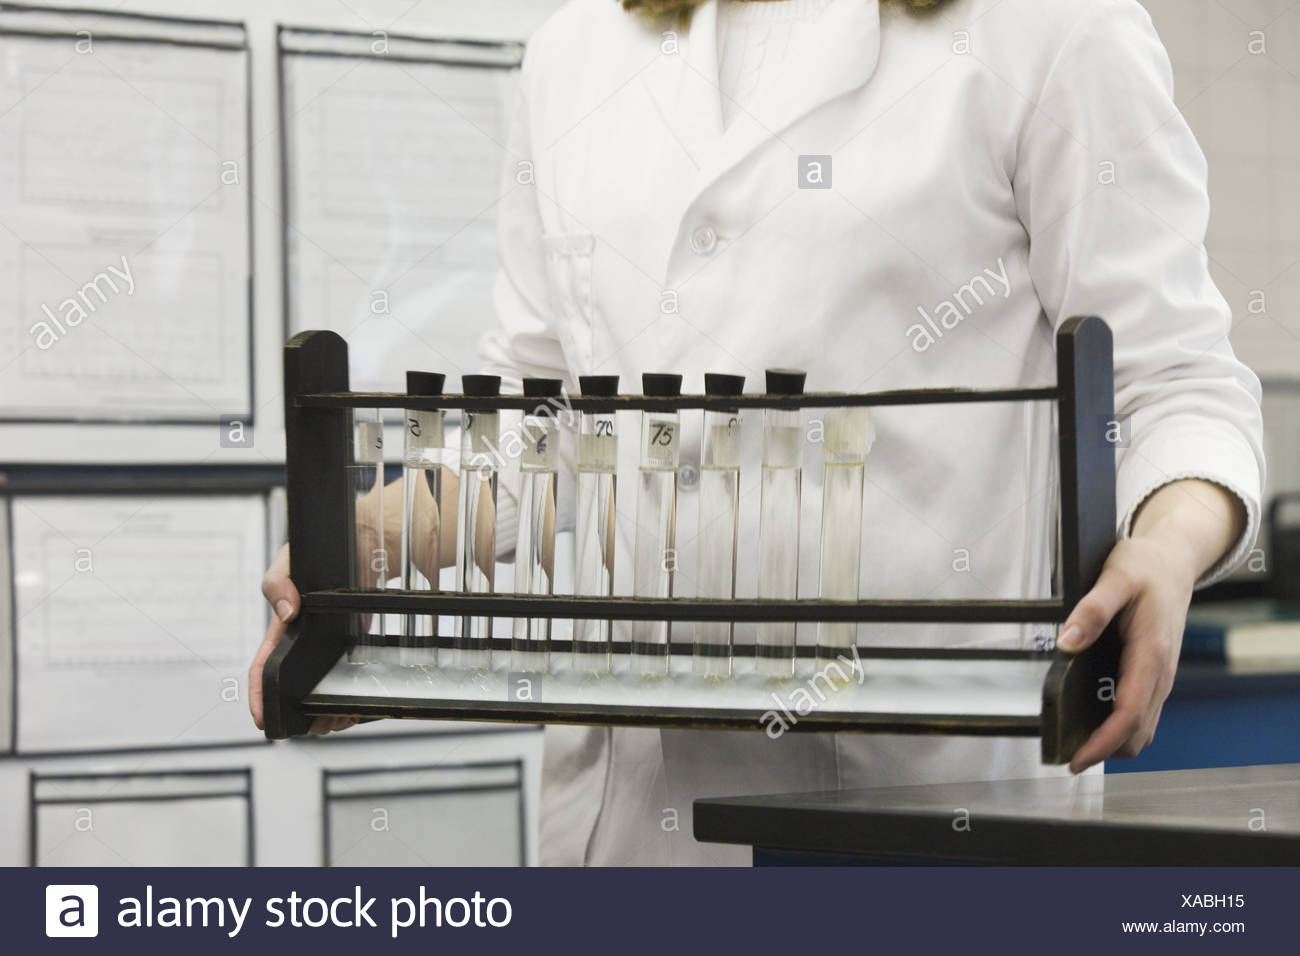 Female scientist carrying color standards in a rack - Stock Image